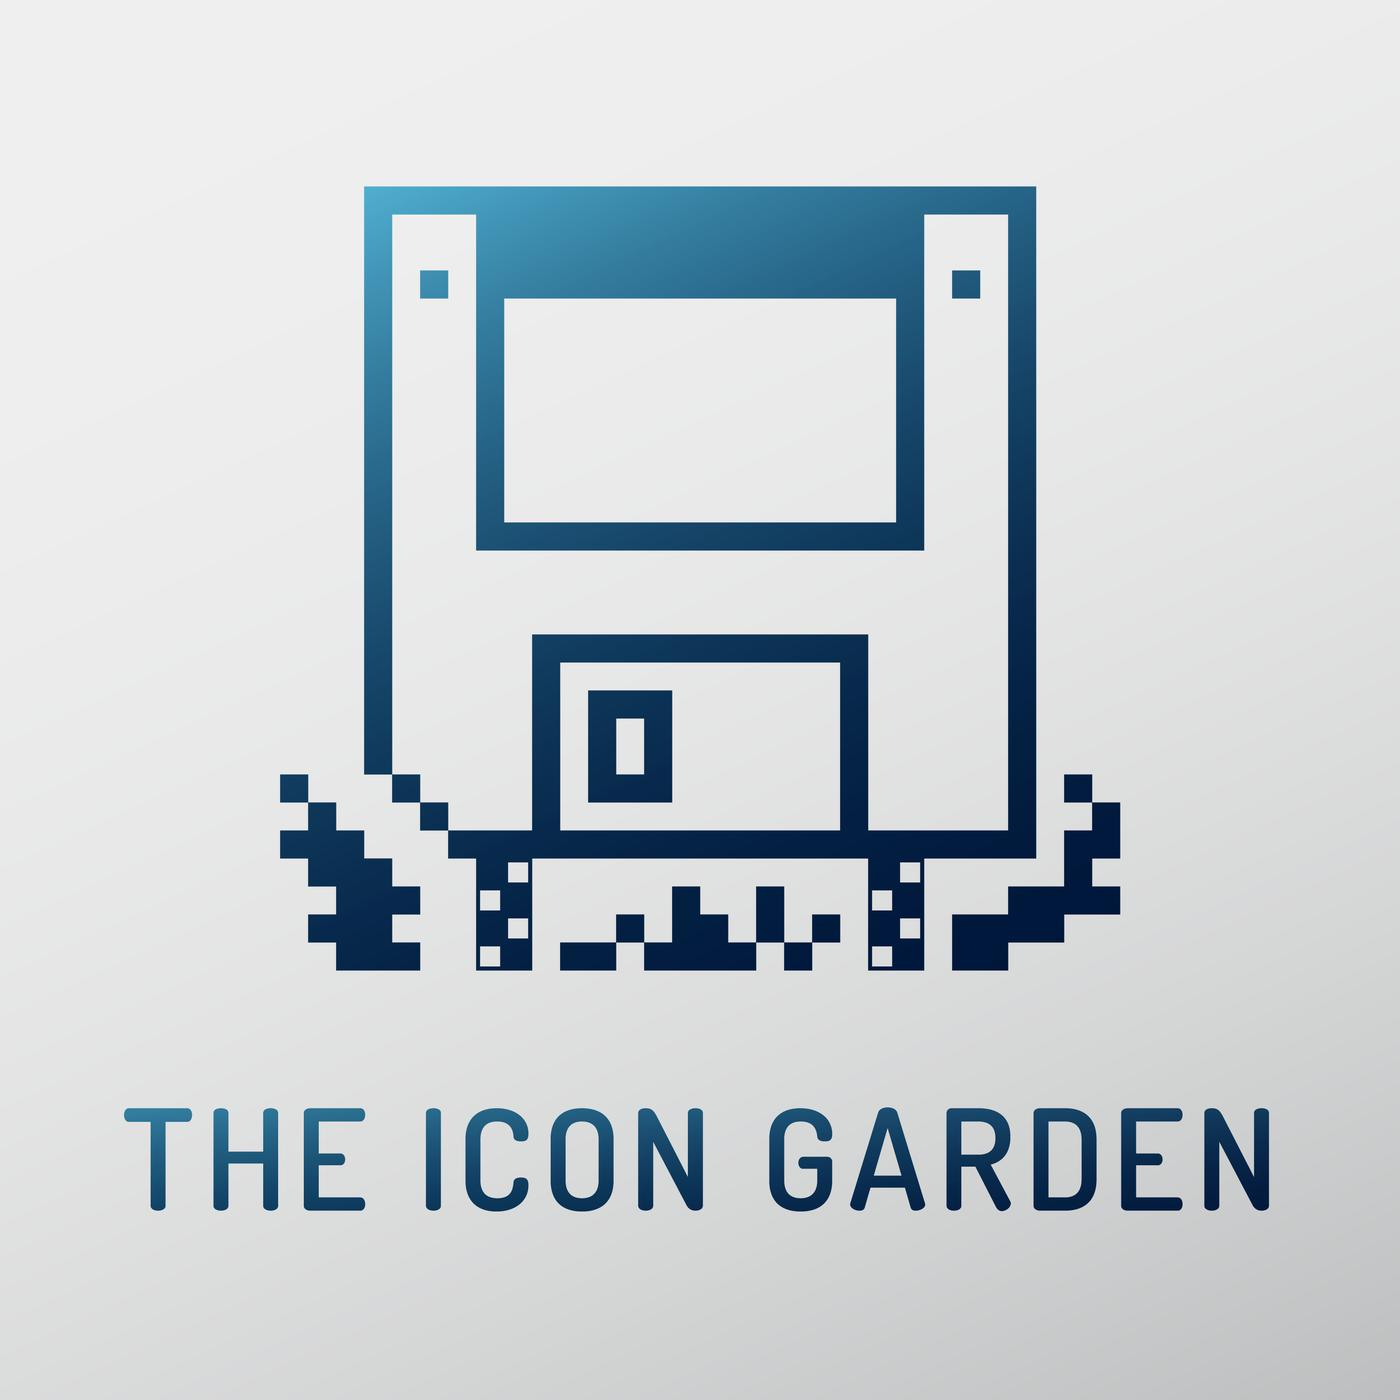 Episode 13: A Head in the Clouds - The Icon Garden (podcast